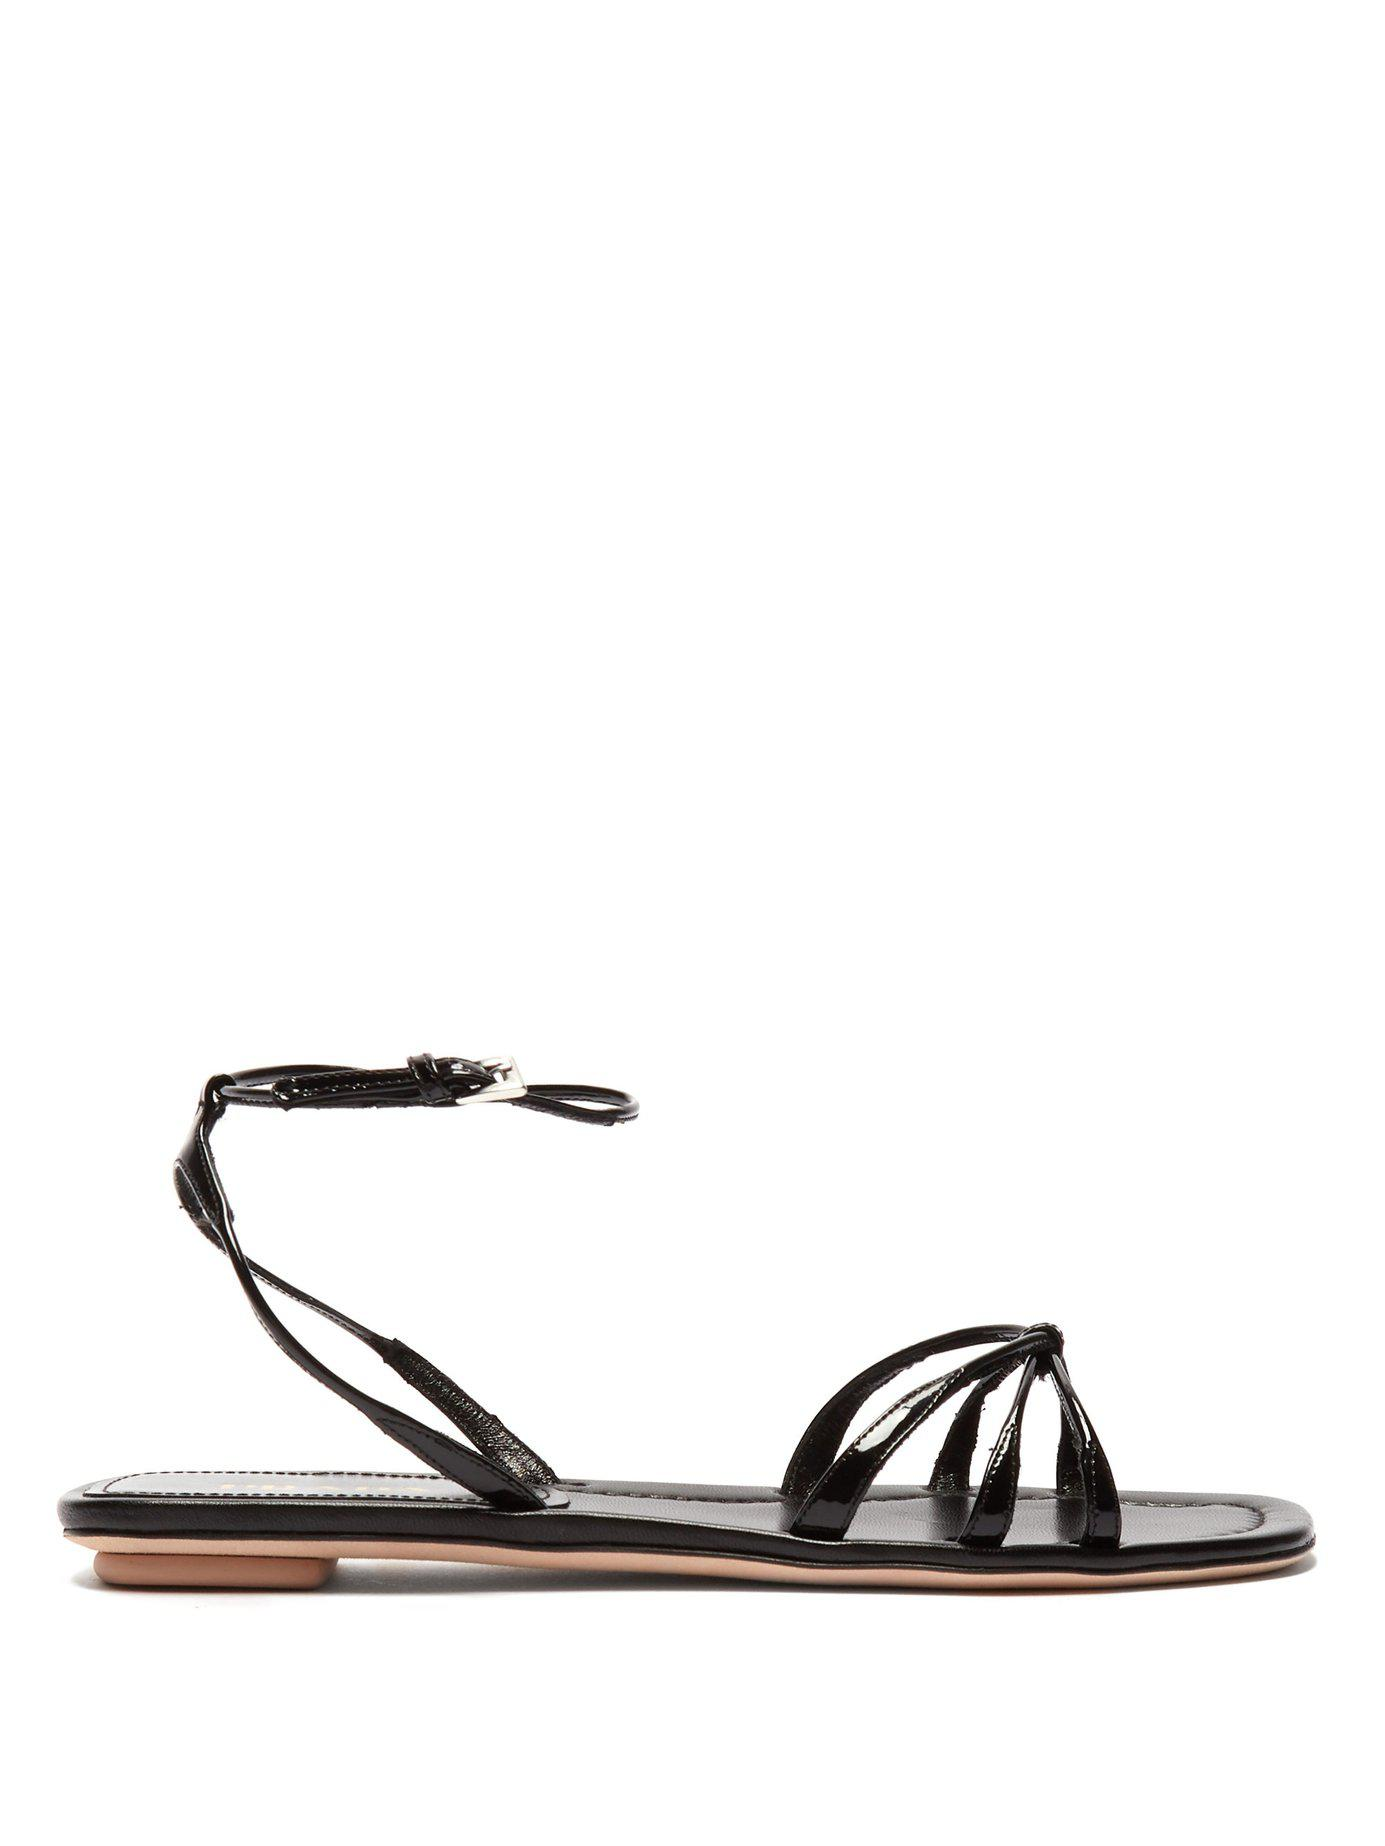 df2c36794b0 Lyst - Prada Knot Front Patent Leather Sandals in Black